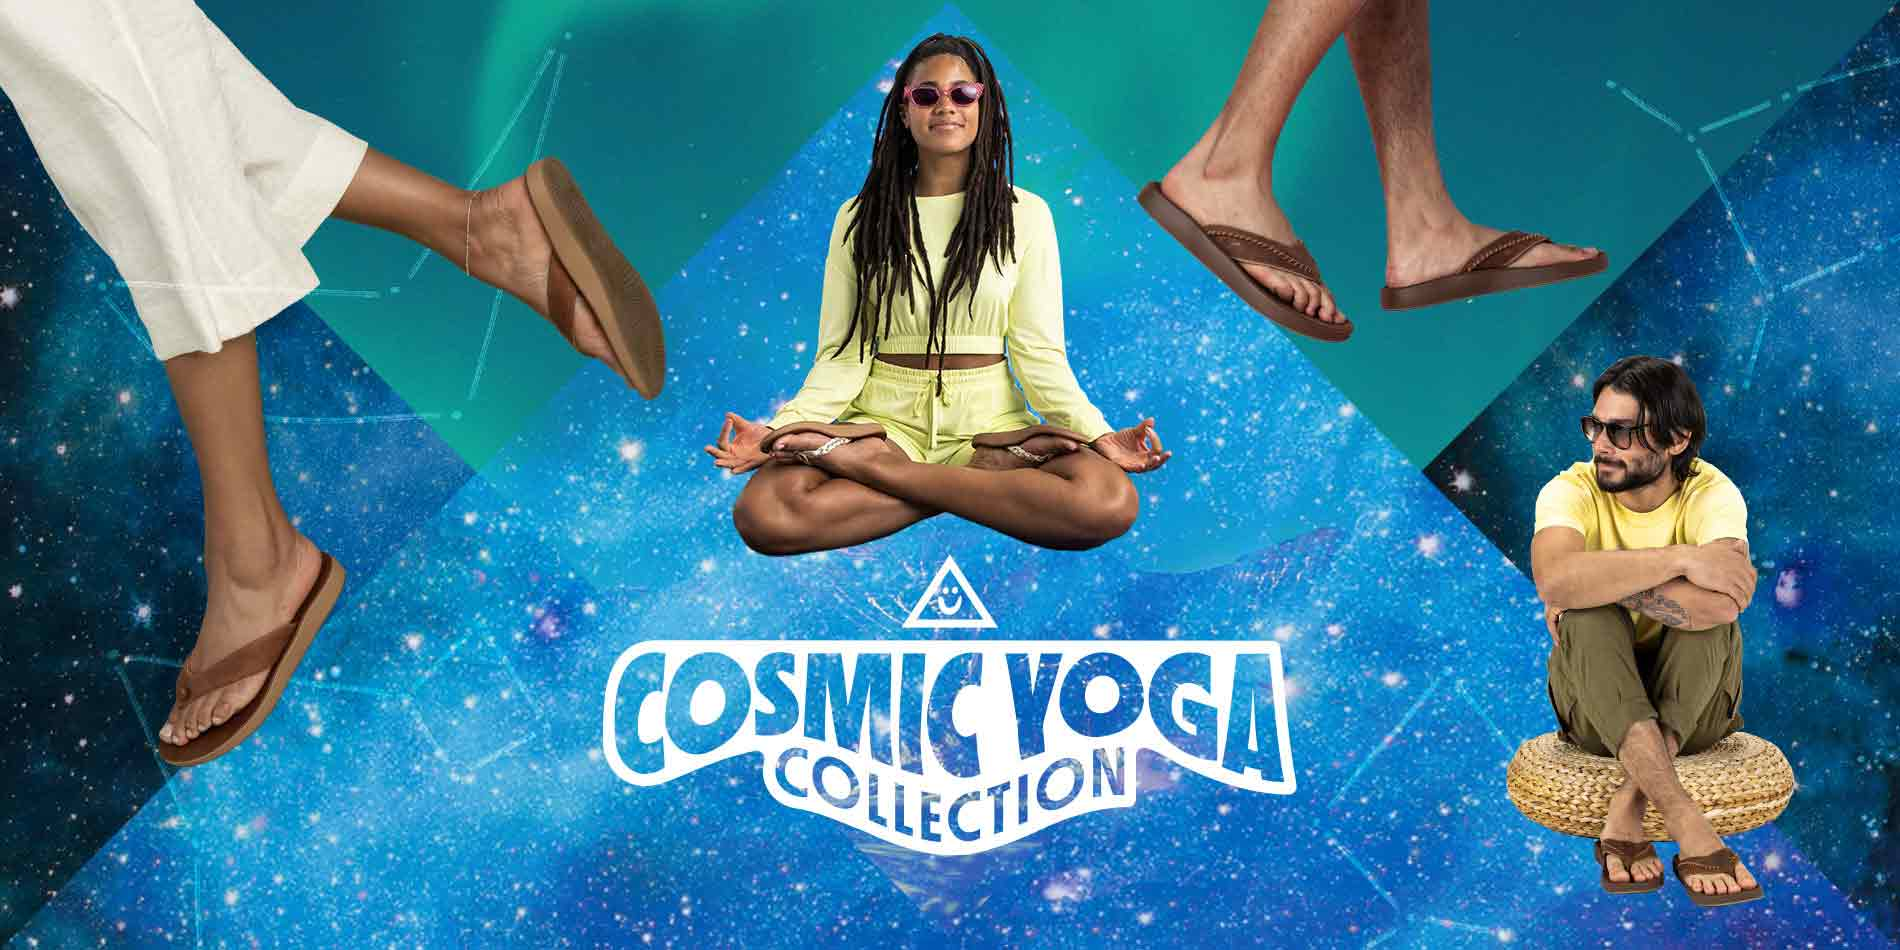 A collage of people, wearing Sanuk Cosmic Yoga Mat Comfort sandals, over space themed, psychadelic patterns.